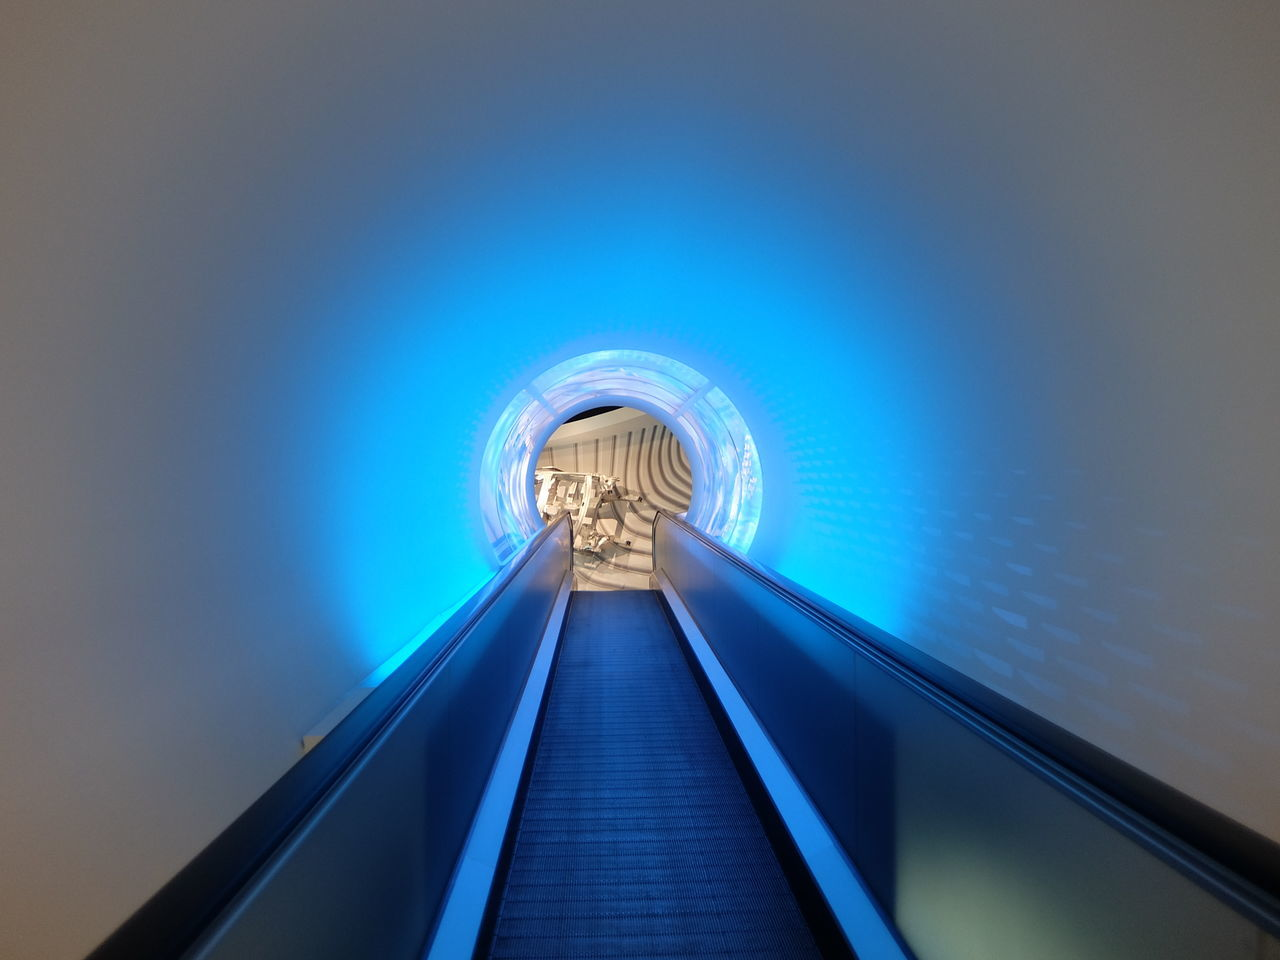 Low Angle View Of Illuminated Escalator